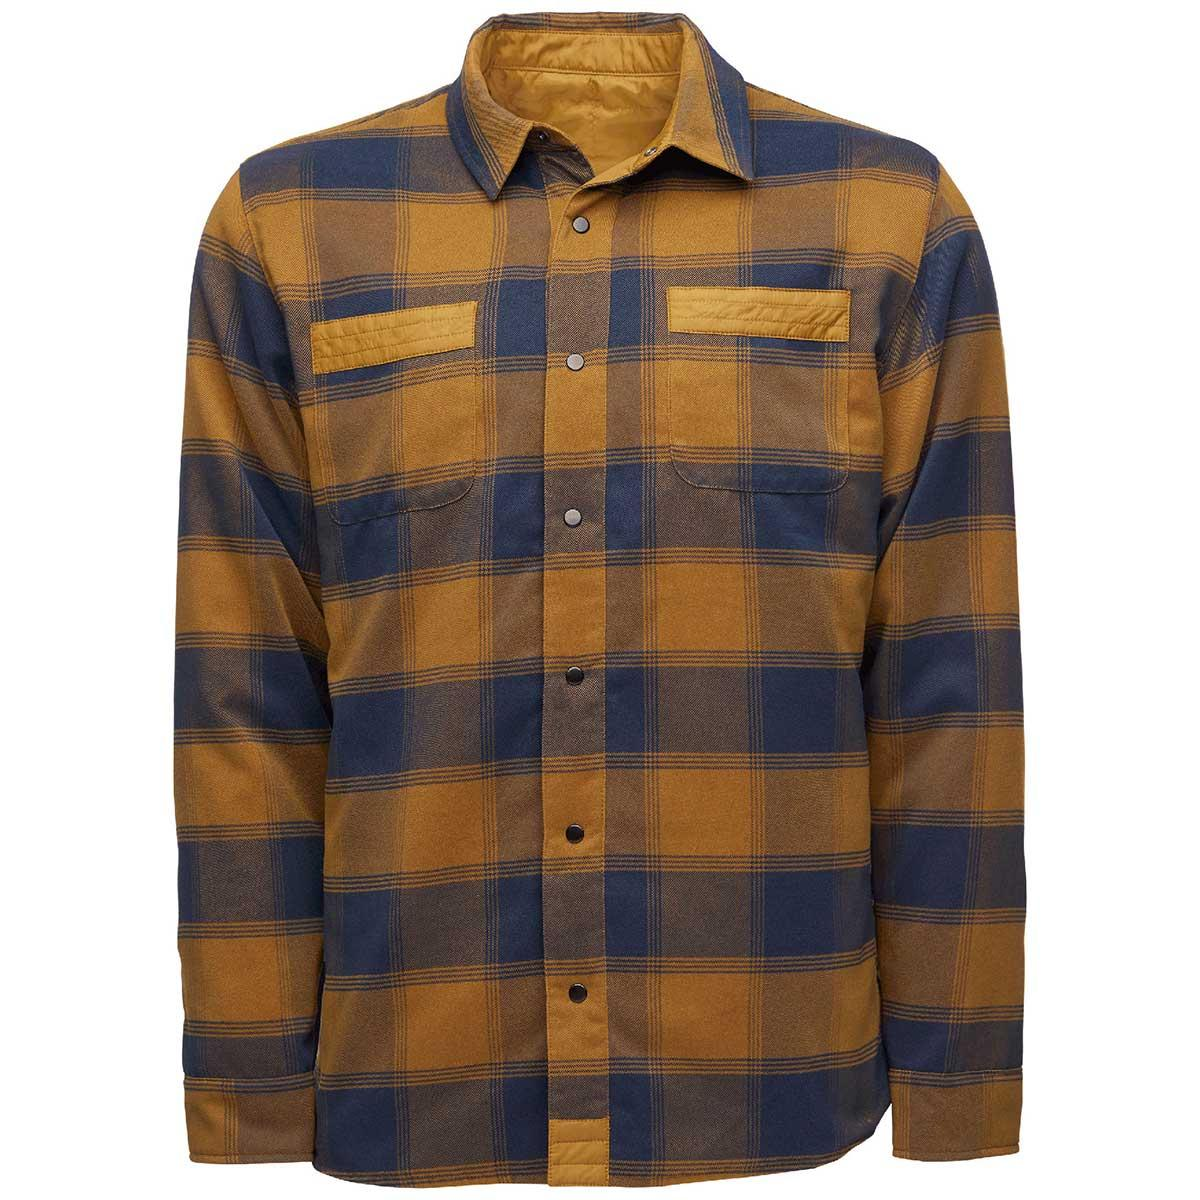 Flylow men's Sinclair Insulated Flannel in Rye and Midnight front view